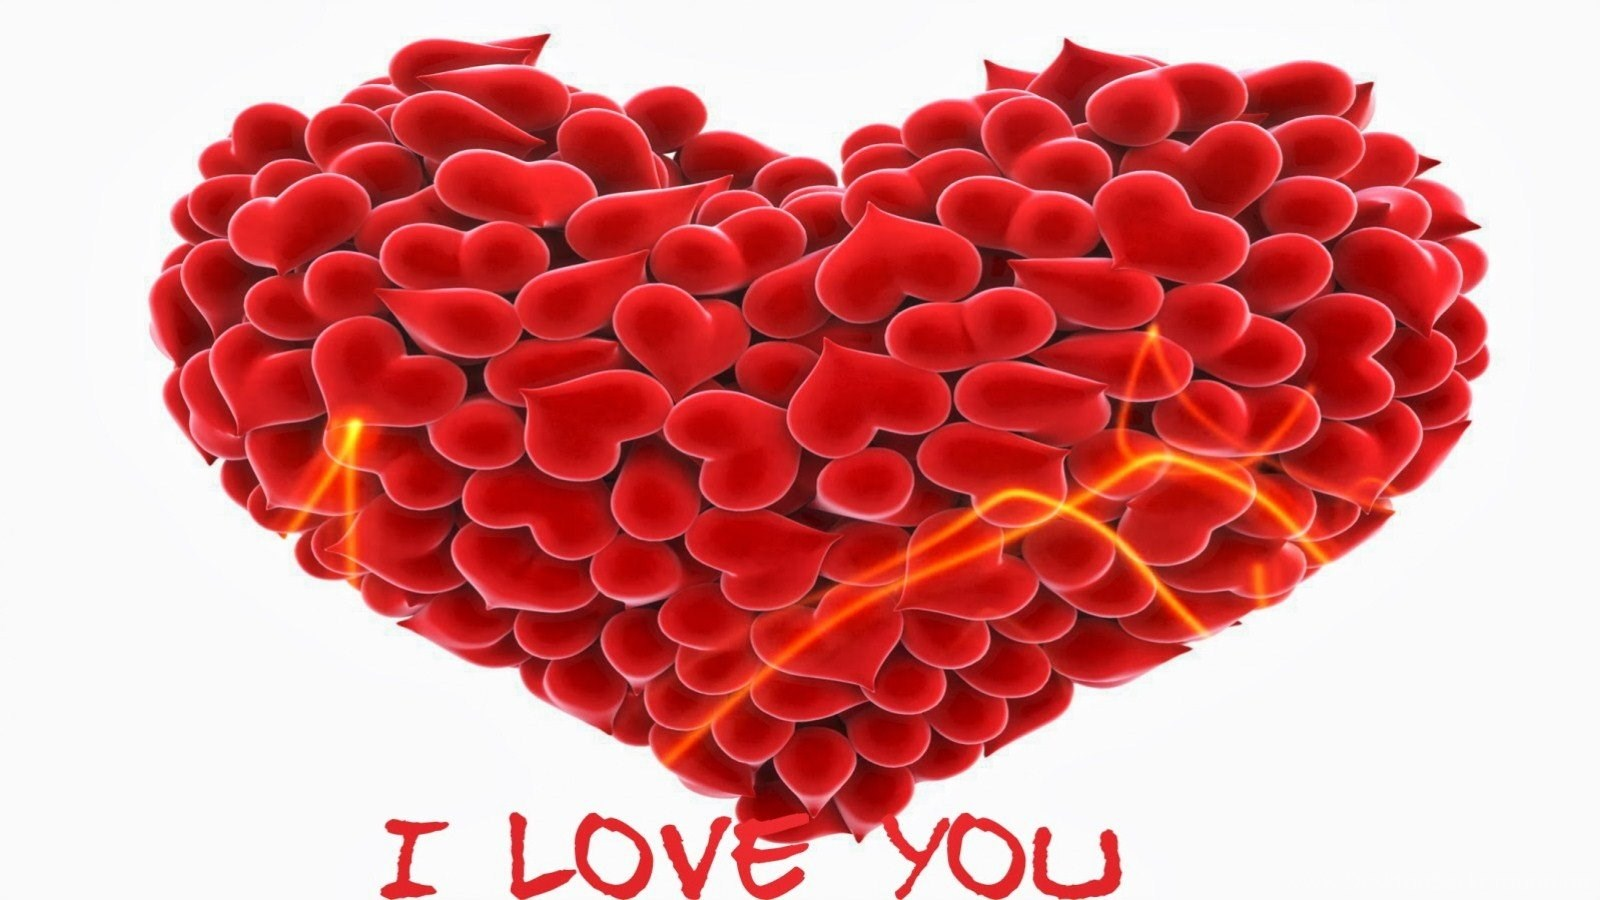 love heart 3d hd wallpapers ~ toptenpack desktop background